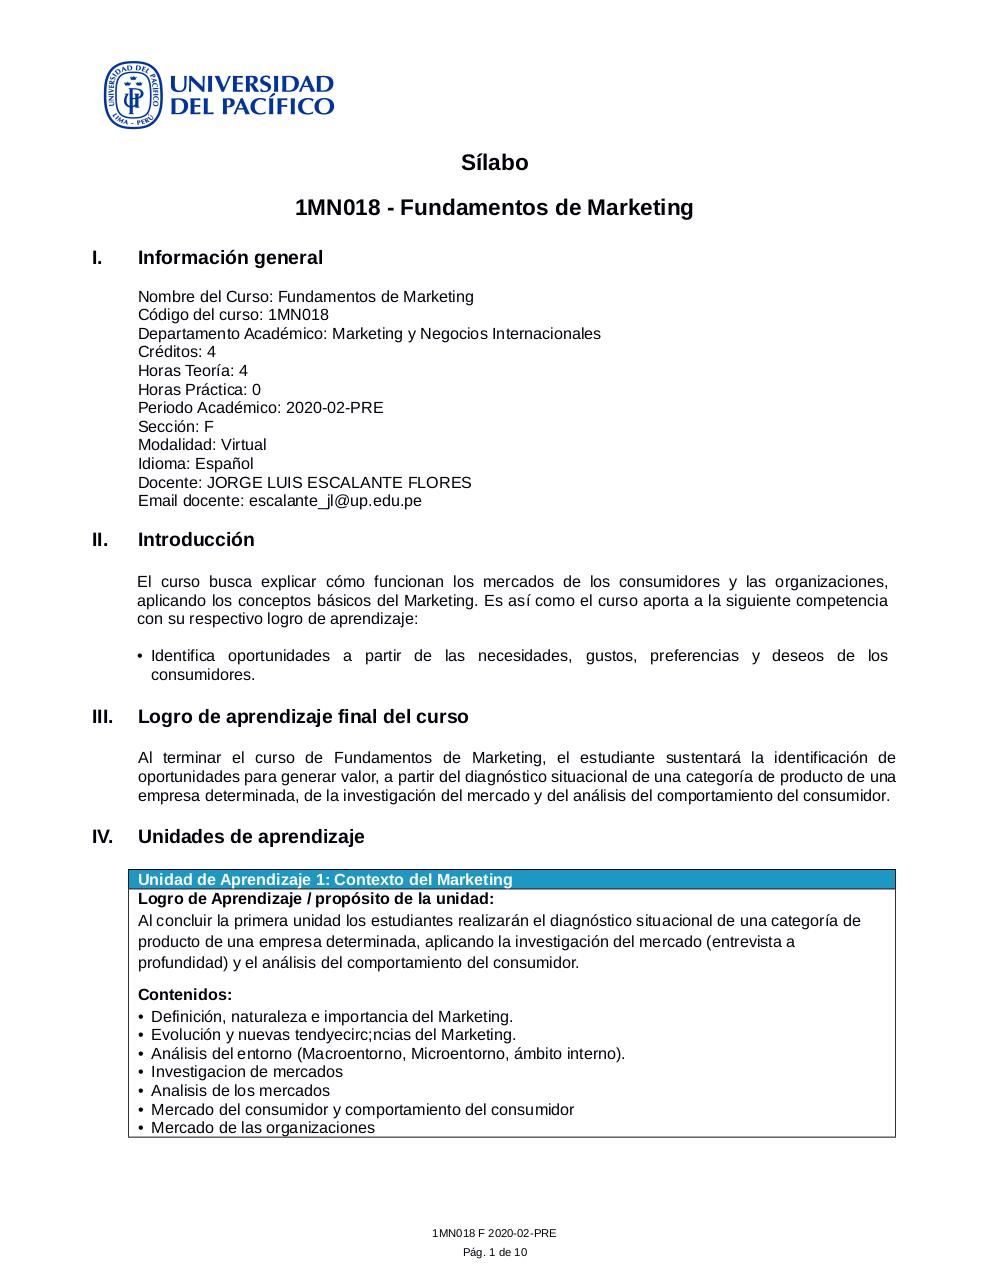 Silabo Funda de Marketing.pdf - página 1/10